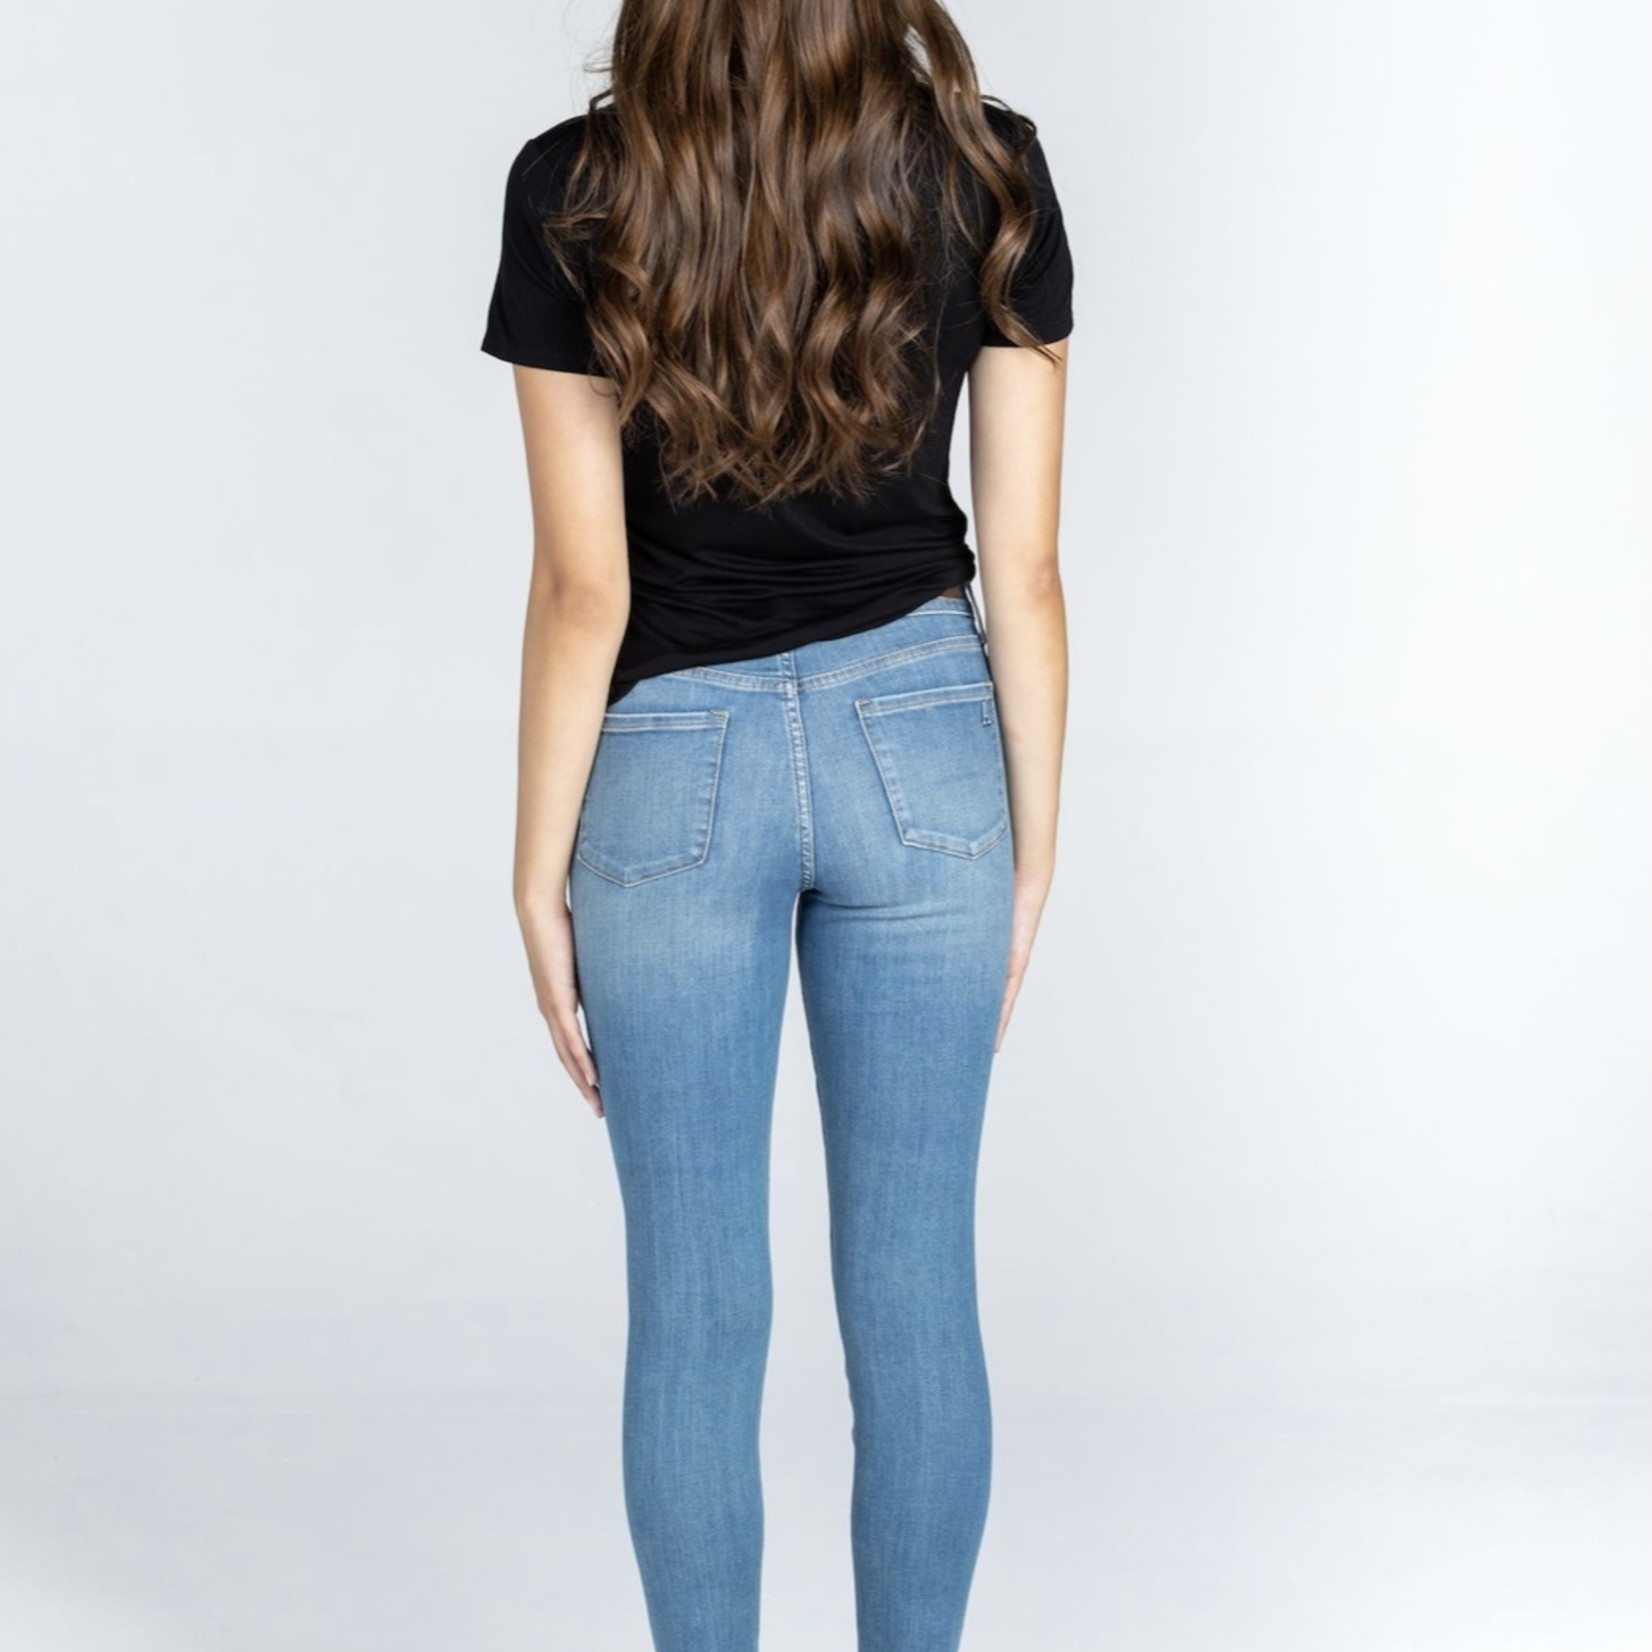 Articles Of Society Articles of Society Carly Crop Jeans